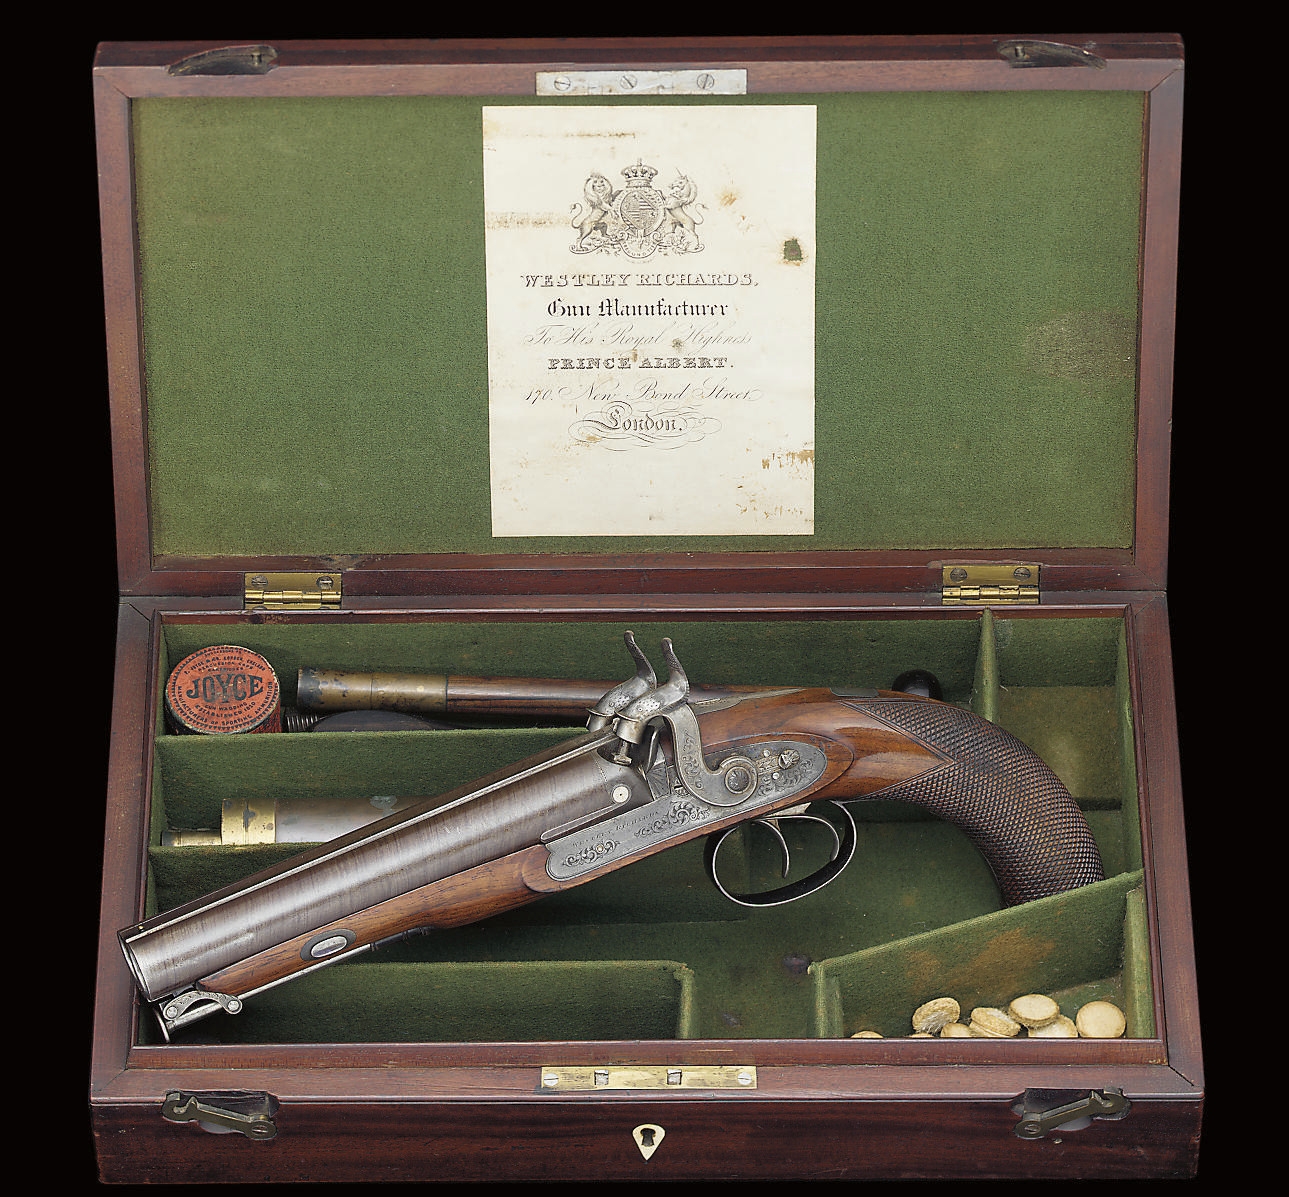 A CASED 18-BORE D B PERCUSSION OFFICER'S OR HOWDAH PISTOL BY WESTLEY